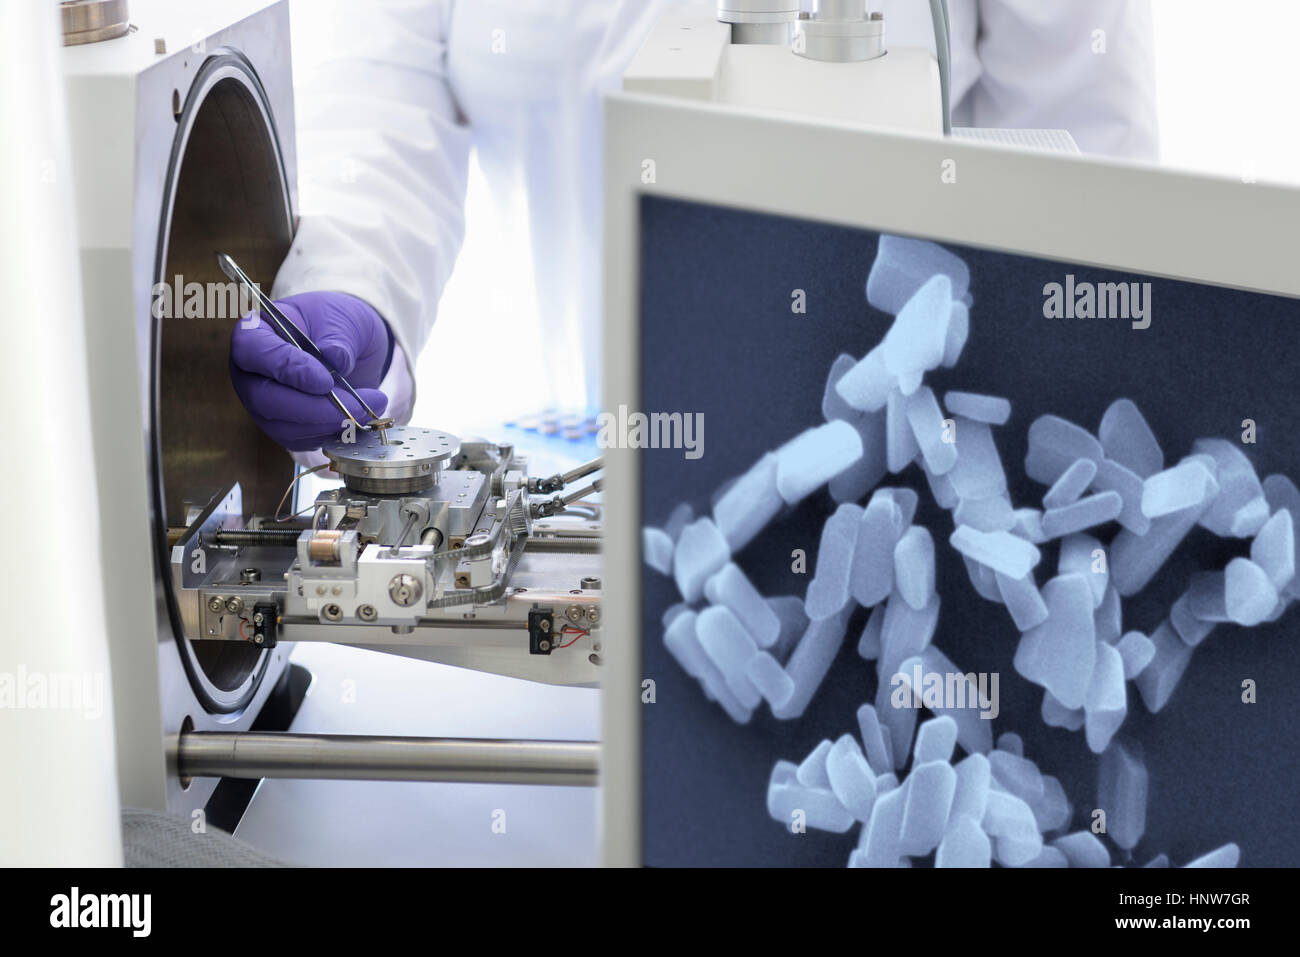 Scientist placing sample in electron microscope with image of crystals in crystal engineering research laboratory - Stock Image